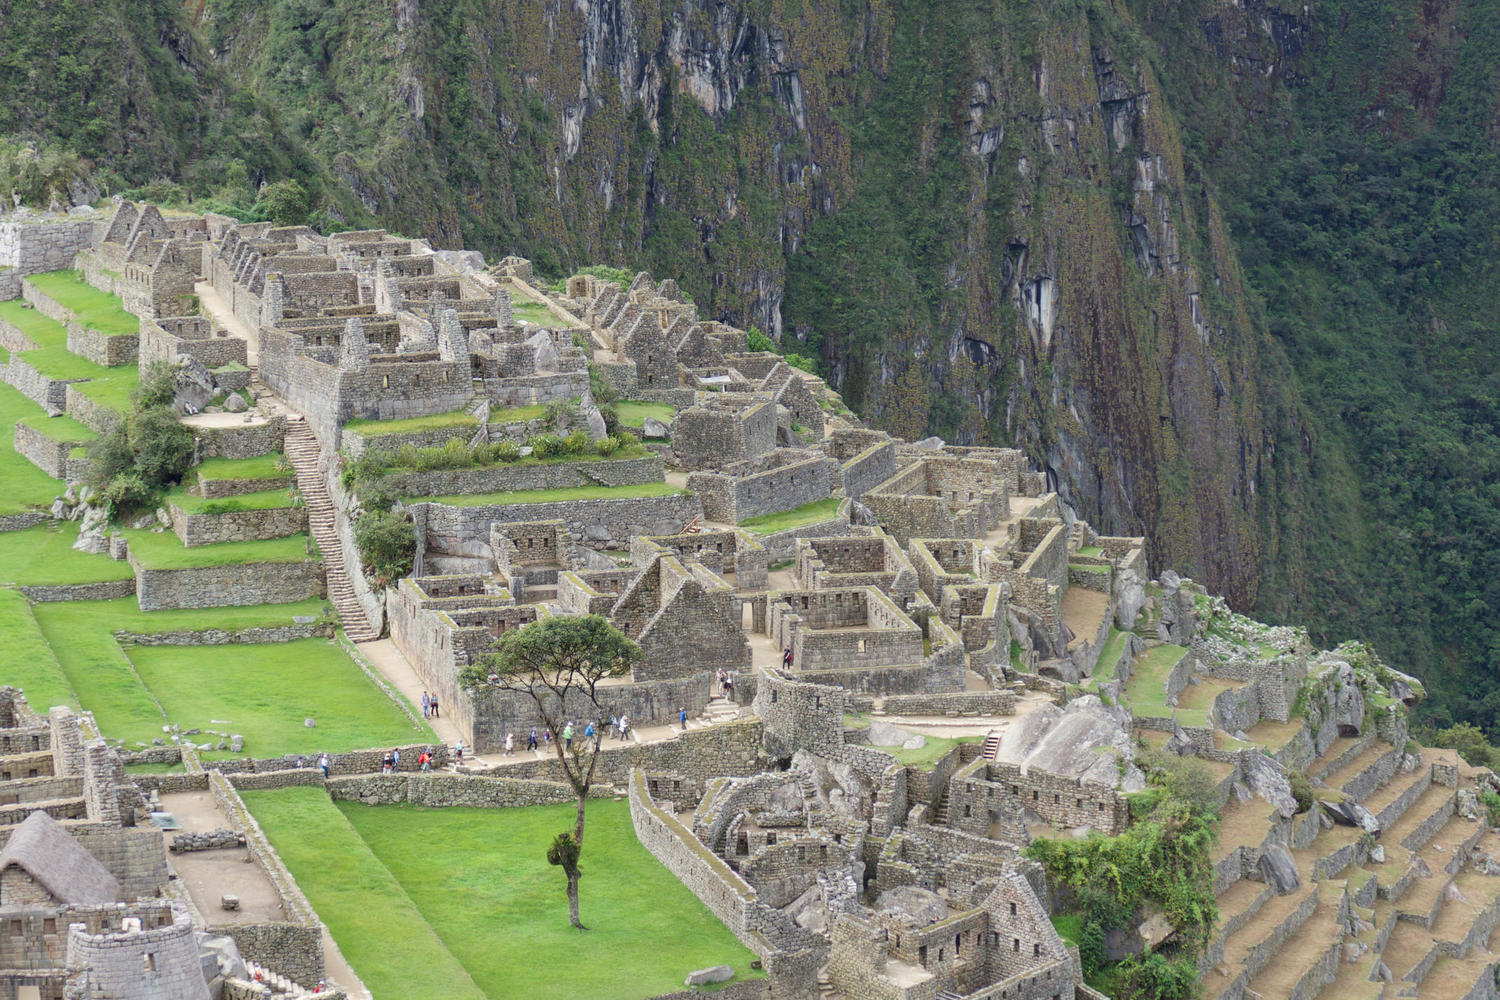 The intricate maze of temples, houses, stairways and plazas at Machu Picchu